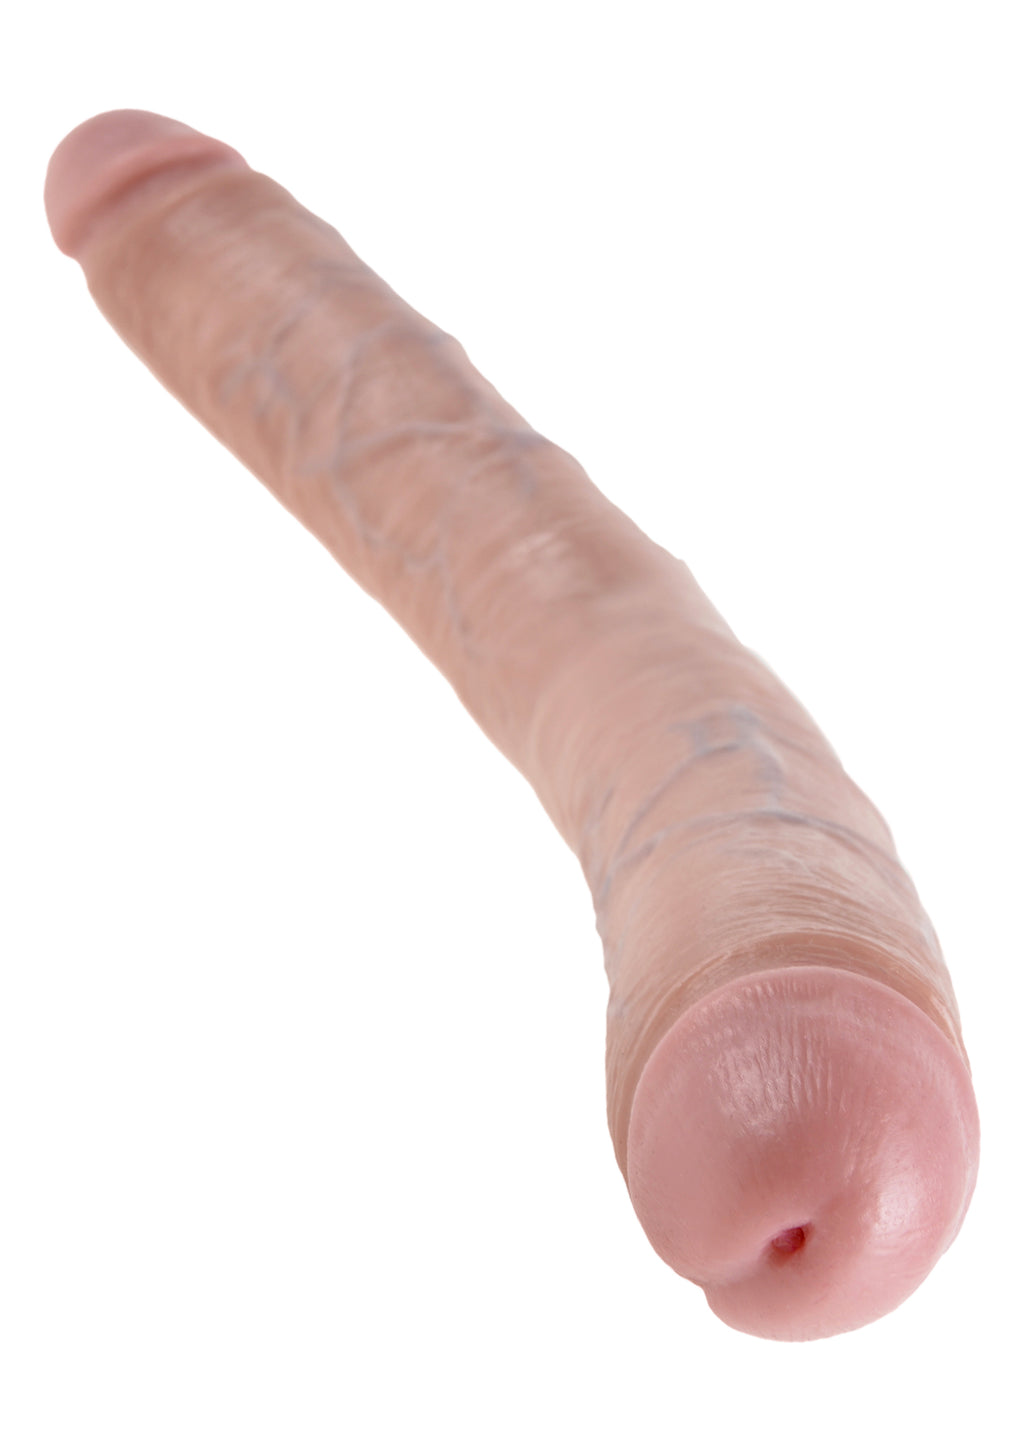 16 Inch | Thick Double Dildo Cock